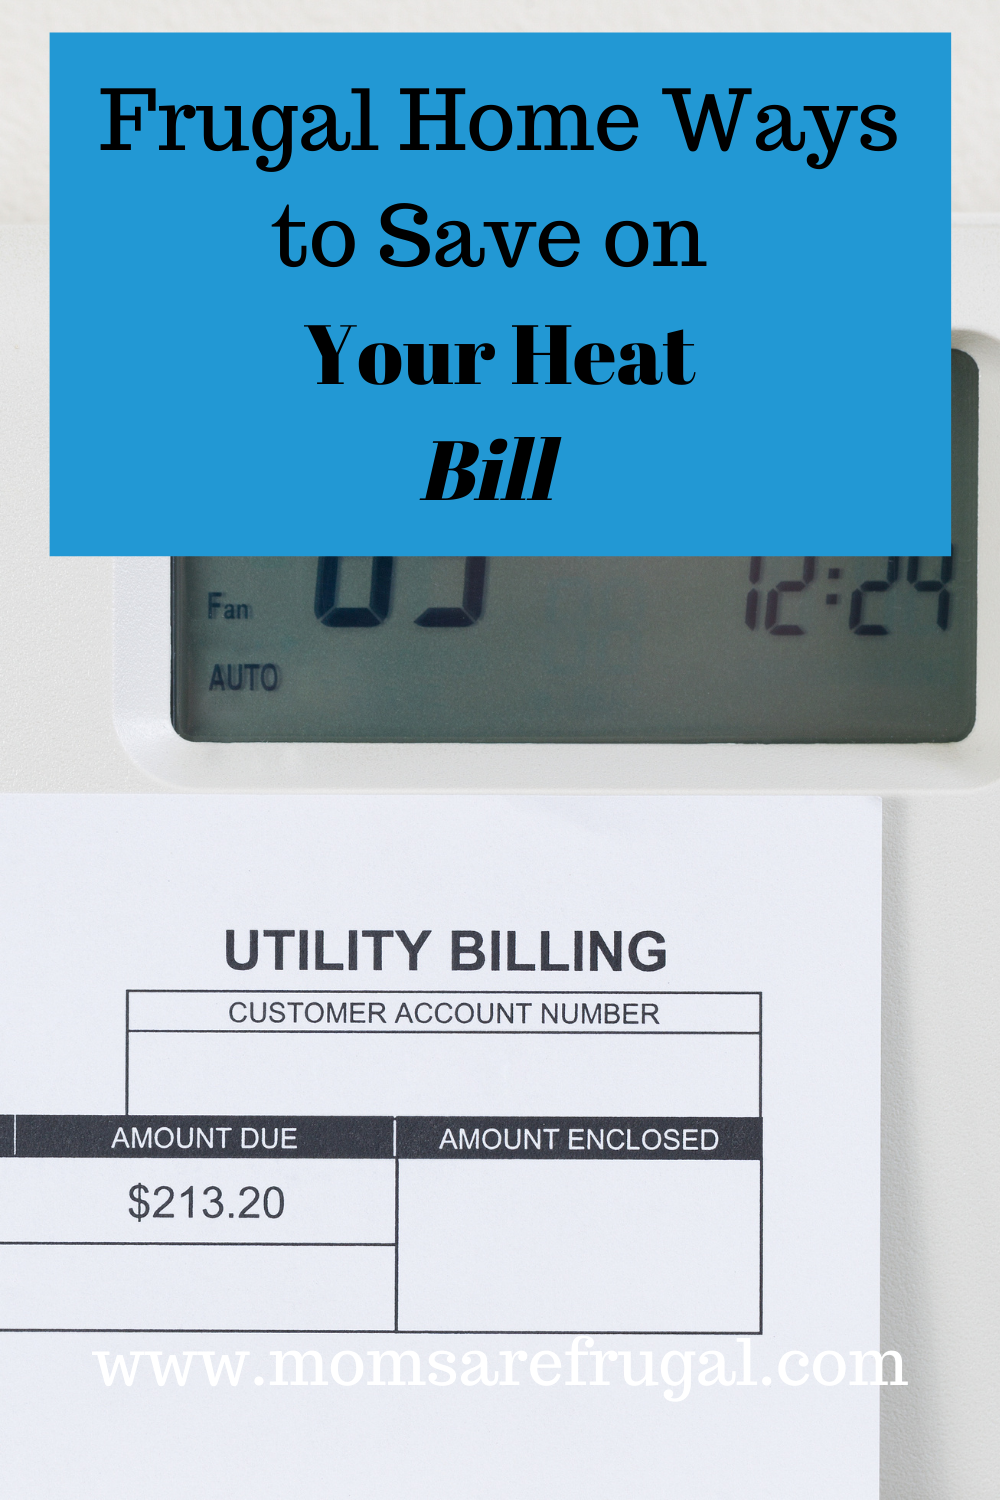 Frugal Home Ways to Save on the Heat Bill